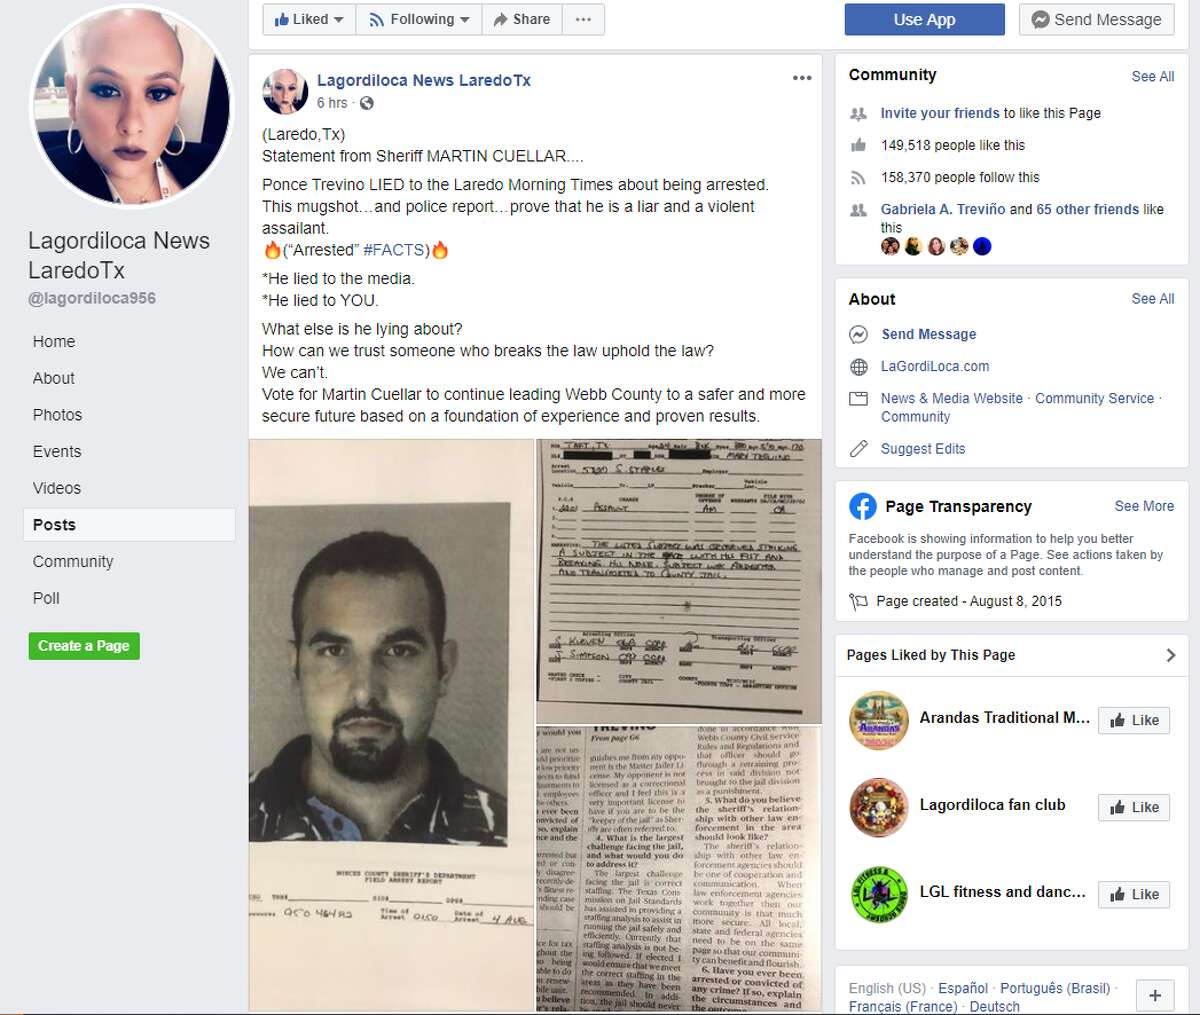 """On Tuesday evening, Priscilla """"La Gordiloca"""" Villarreal posted to her thousands of followers on Facebook a statement she says is from Cuellar along with an alleged mugshot and police report from 1995."""